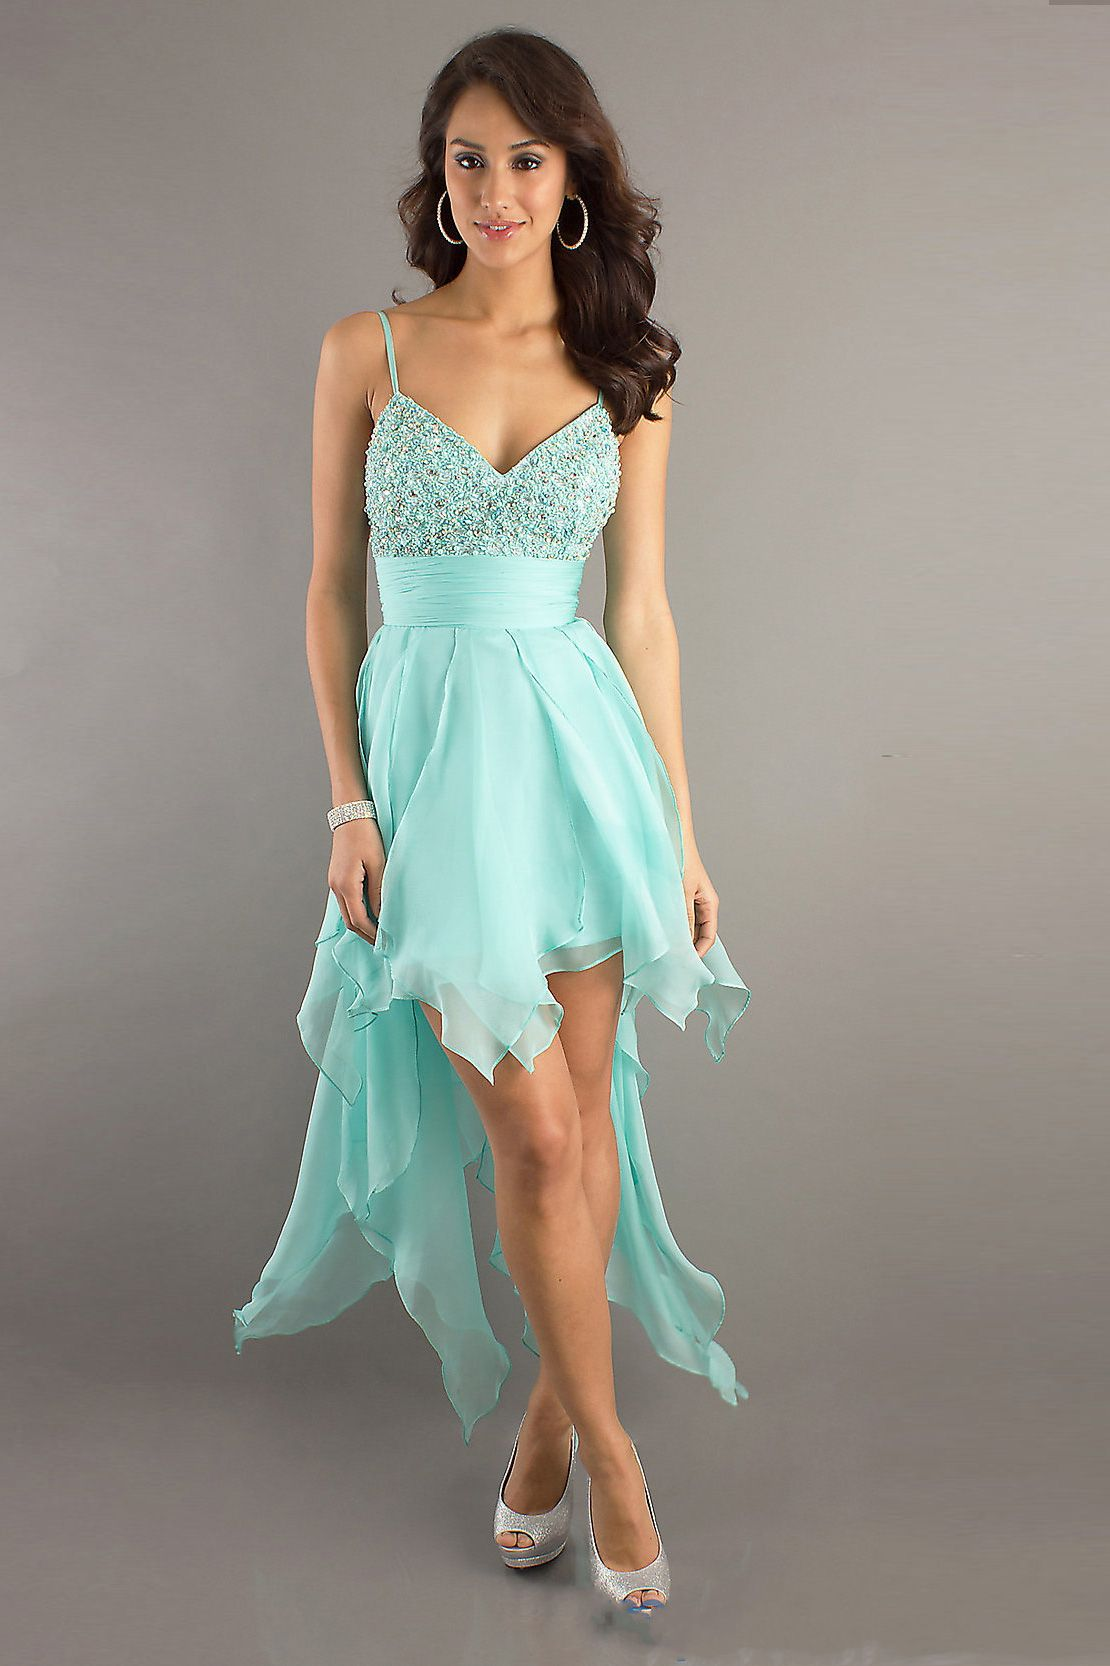 cool Trends For 2013 - Ideal Homecoming Dresses | Fashion ...